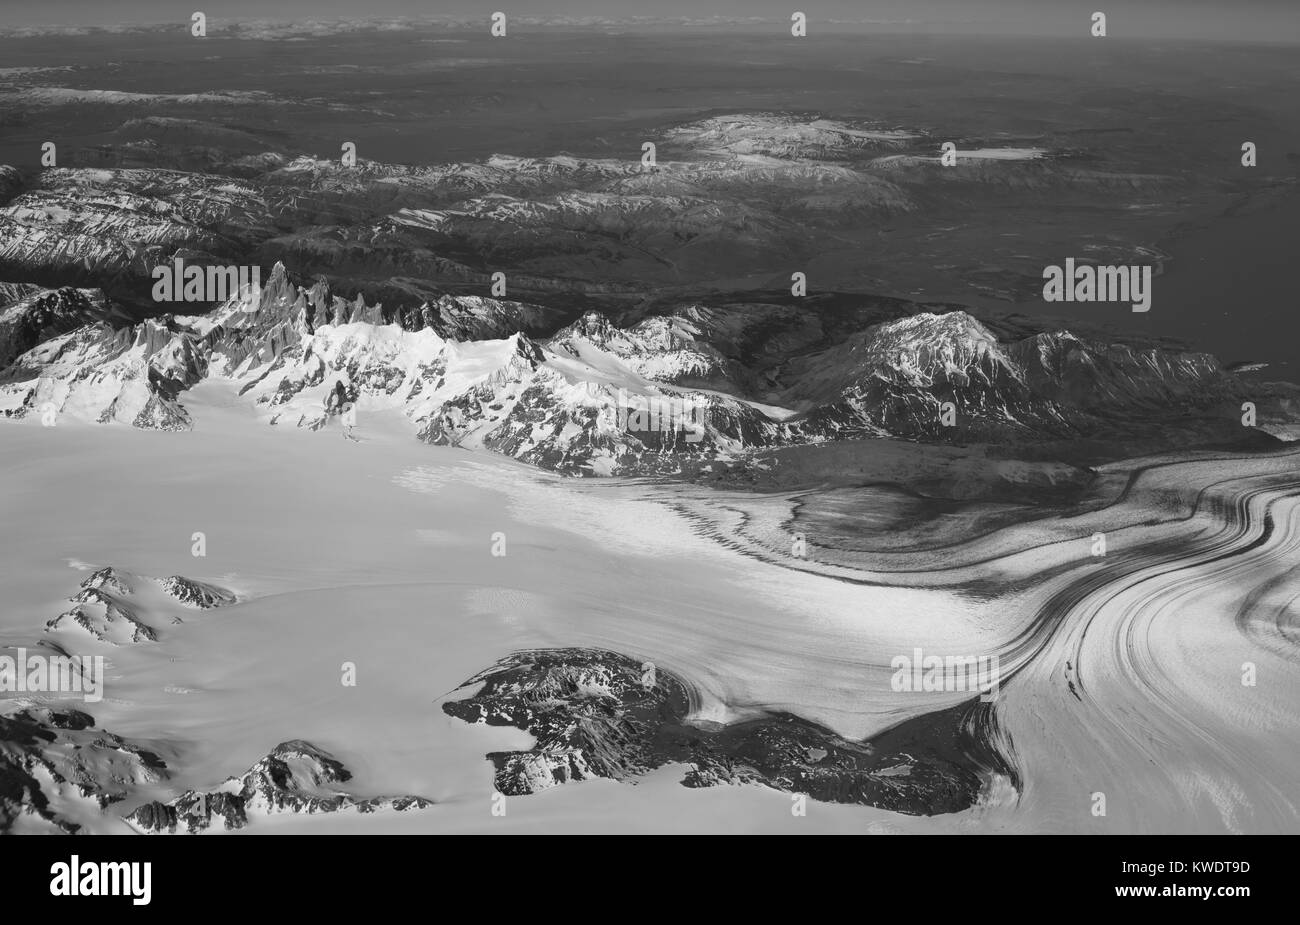 Aerial view of Mt. FitzRoy (El Chalten) and the Patagonian Icefield, taken from a commercial airplane over the Argentinian - Stock Image